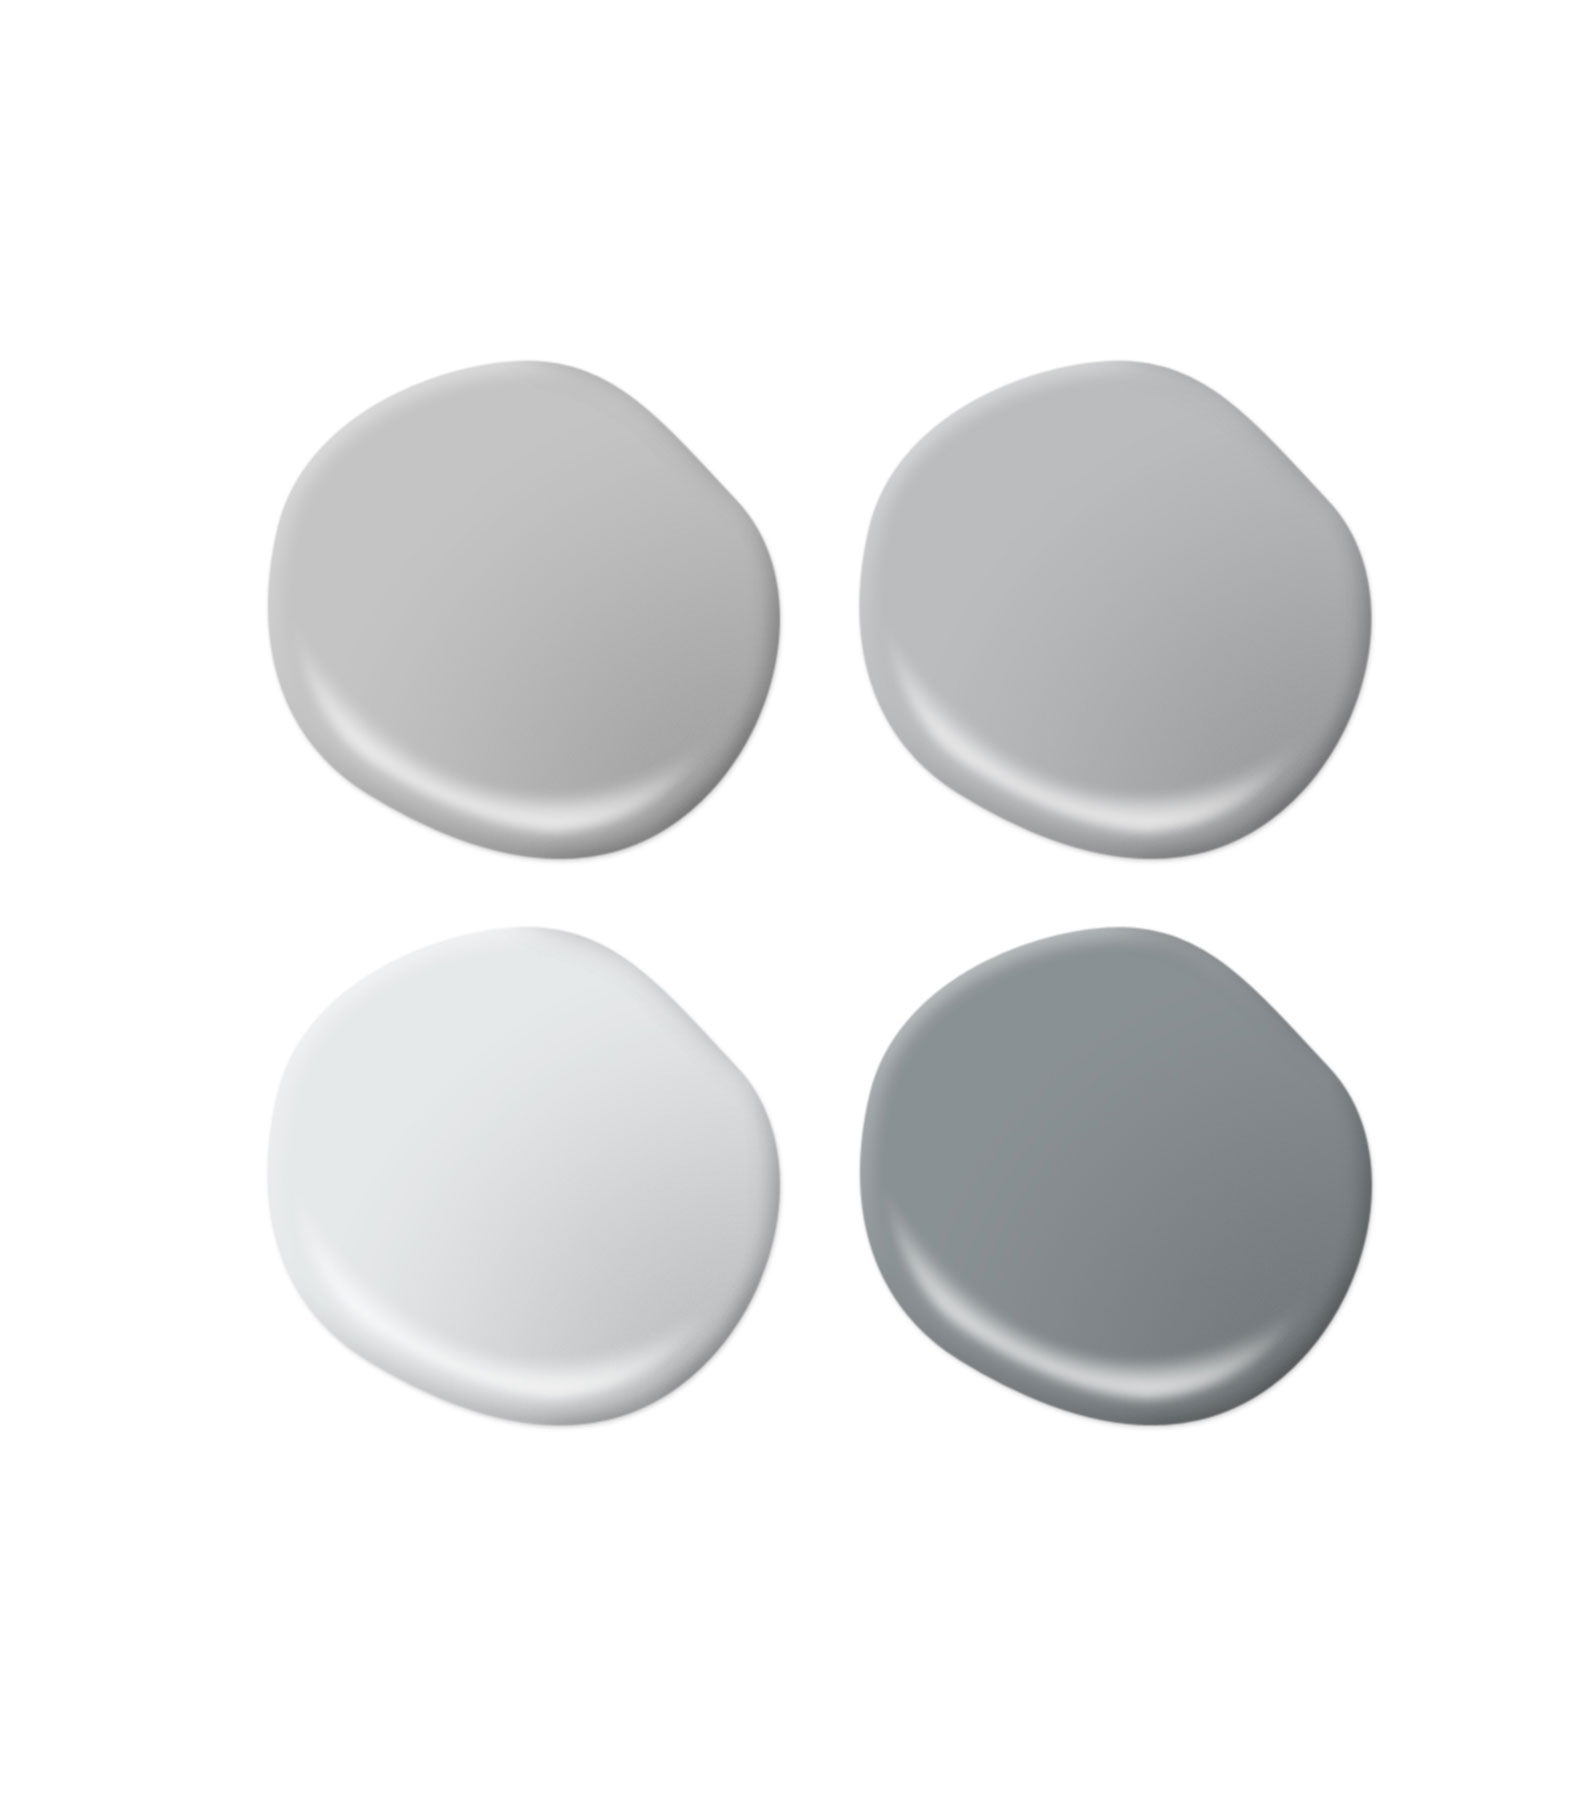 Color Palette: Shades of Gray